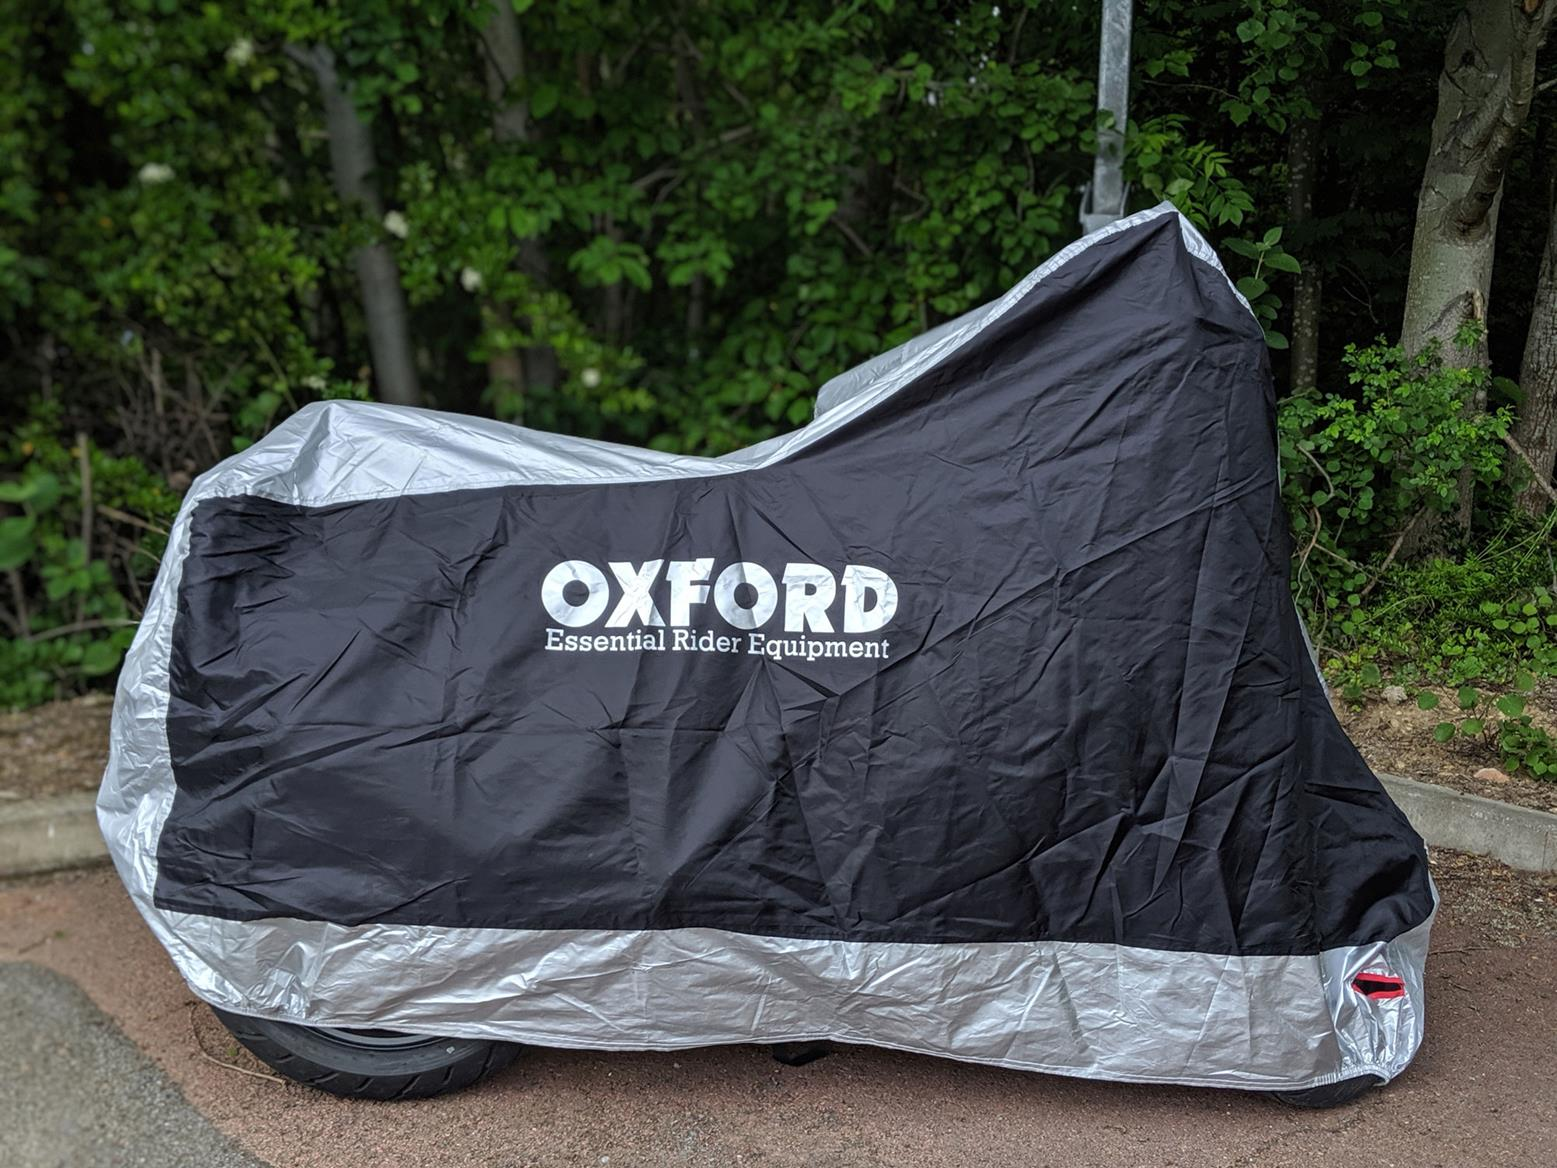 The cover from Oxford Products fits the Suzuki GSX-S125 perfectly, and even has a hole for a disc lock